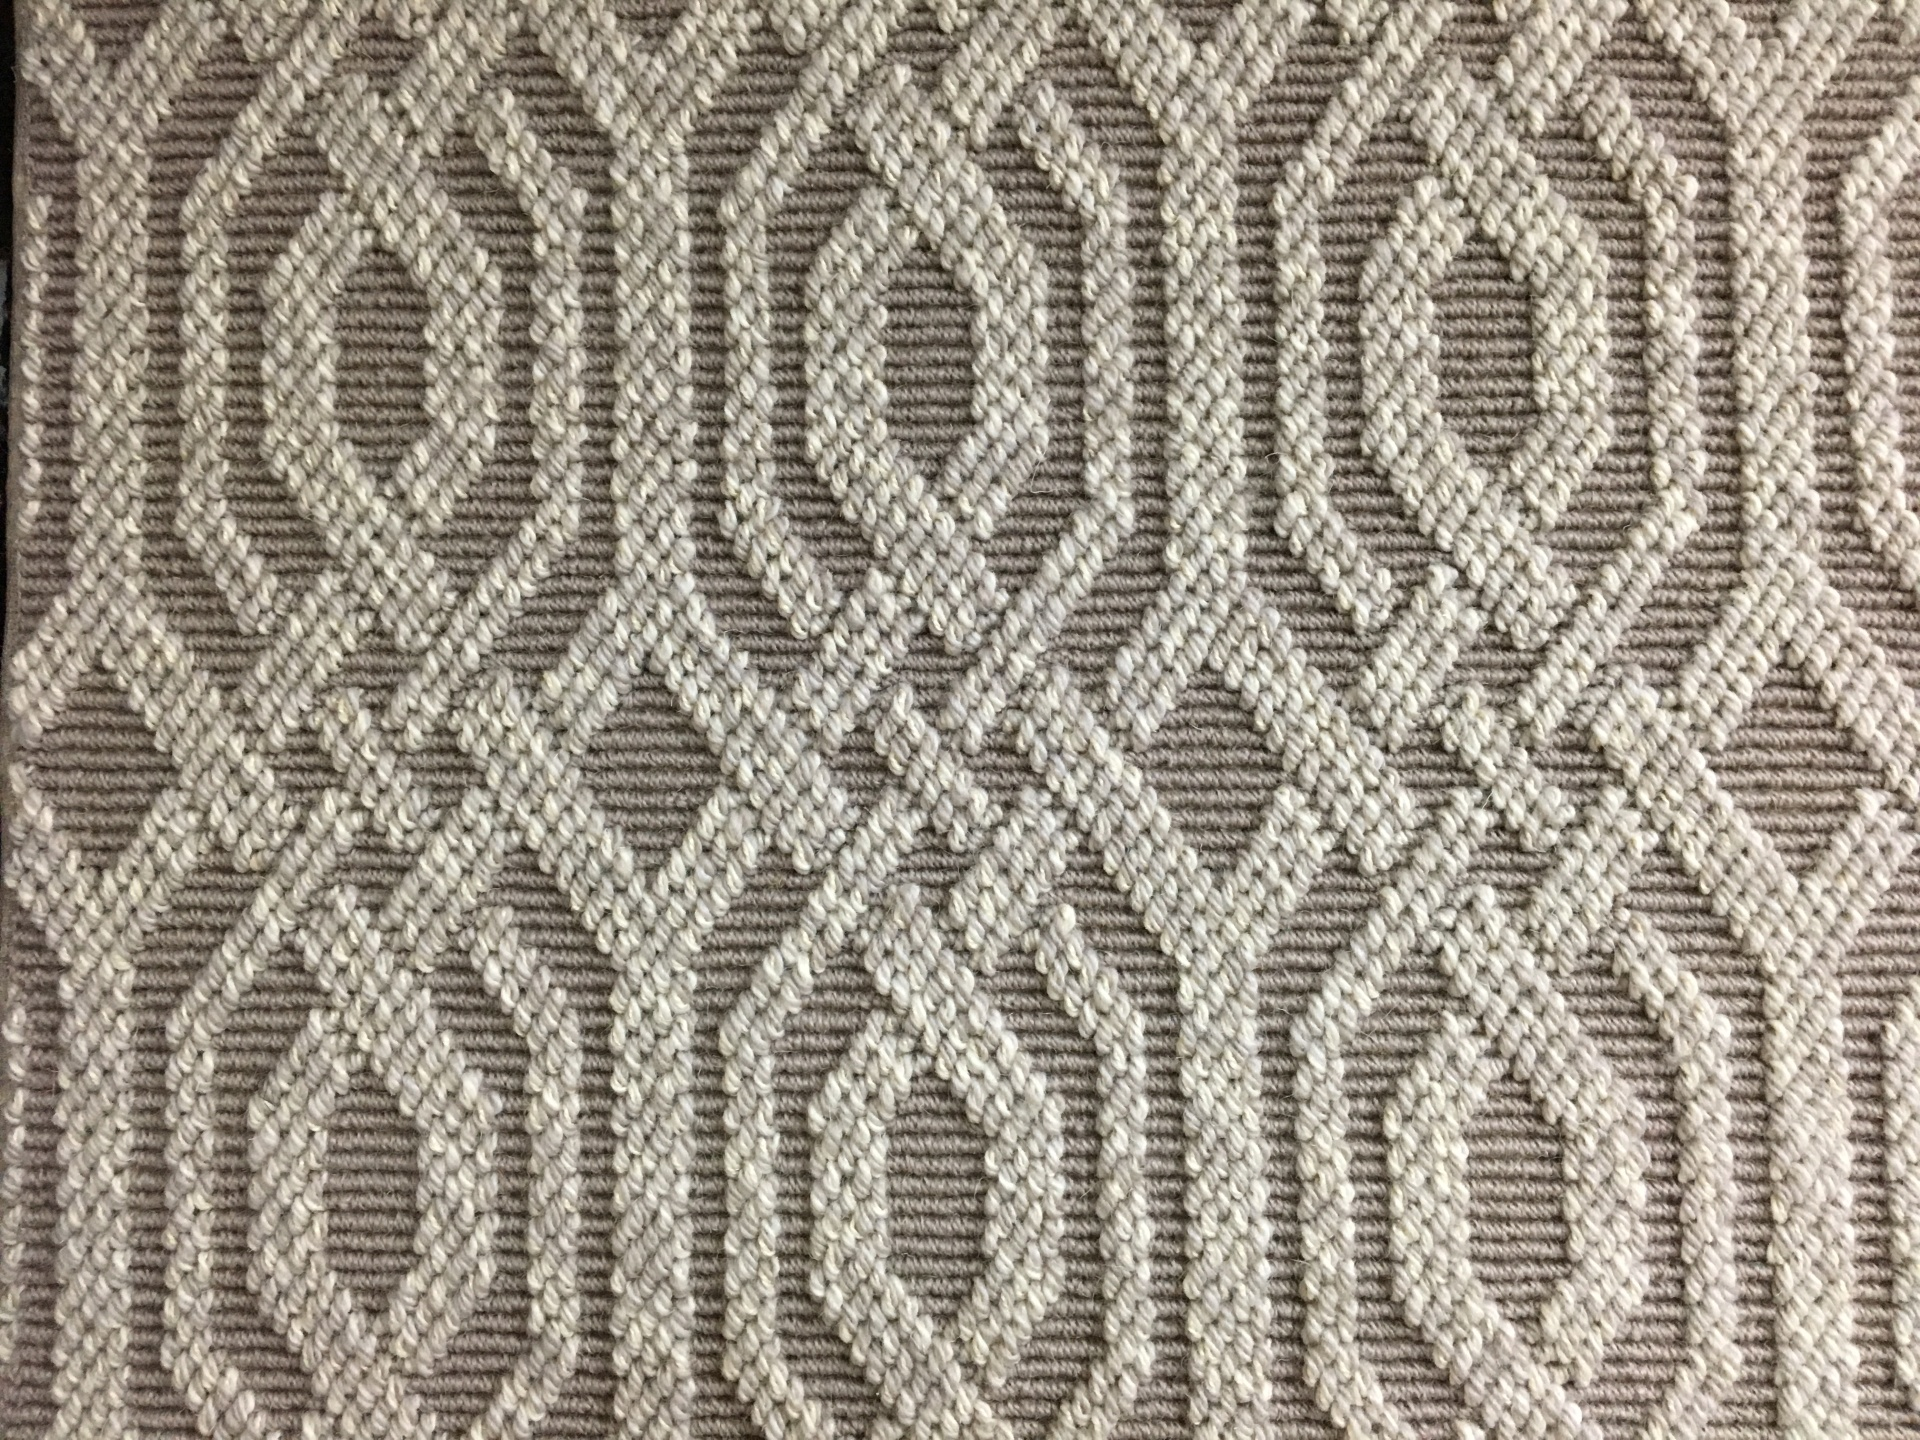 Carpet, area rugs, natural fibers, carpeting, rug, wall to wall carpet, plush, thick, comfortable, soft, clean carpet, helios, helios carpet, helios fibers